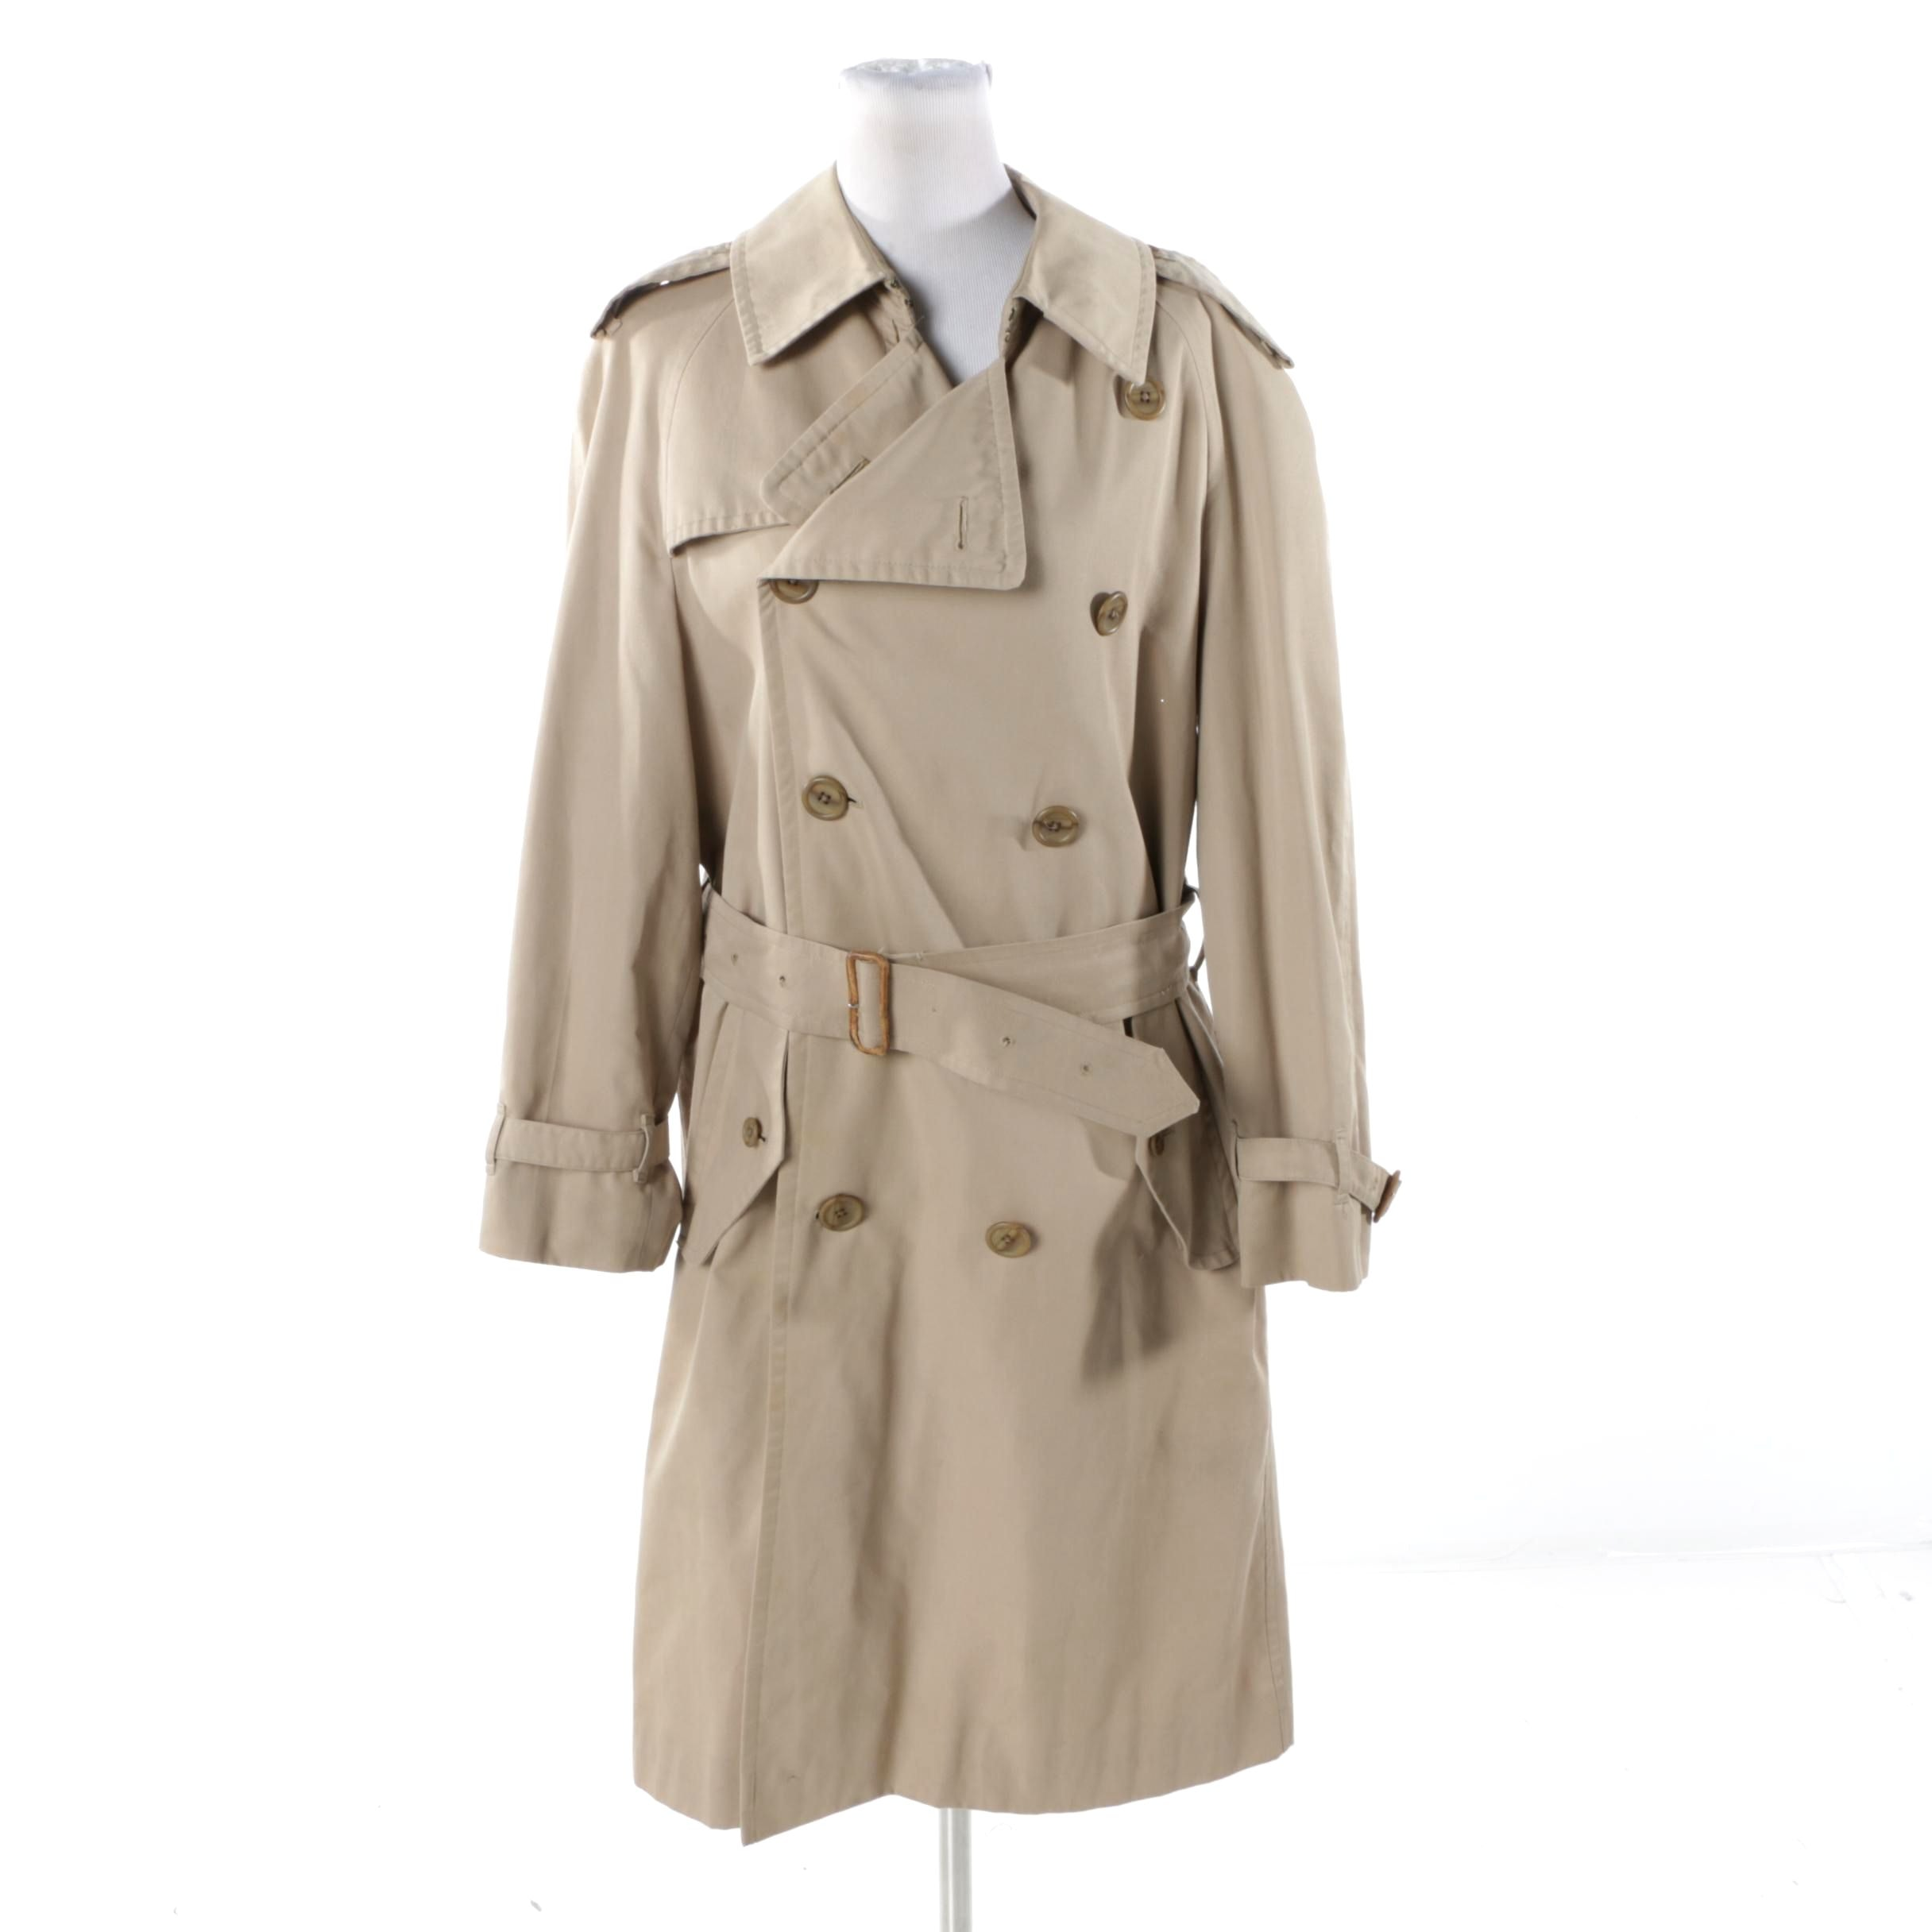 Women's Vintage Burberry Double-Breasted Khaki Trench Coat